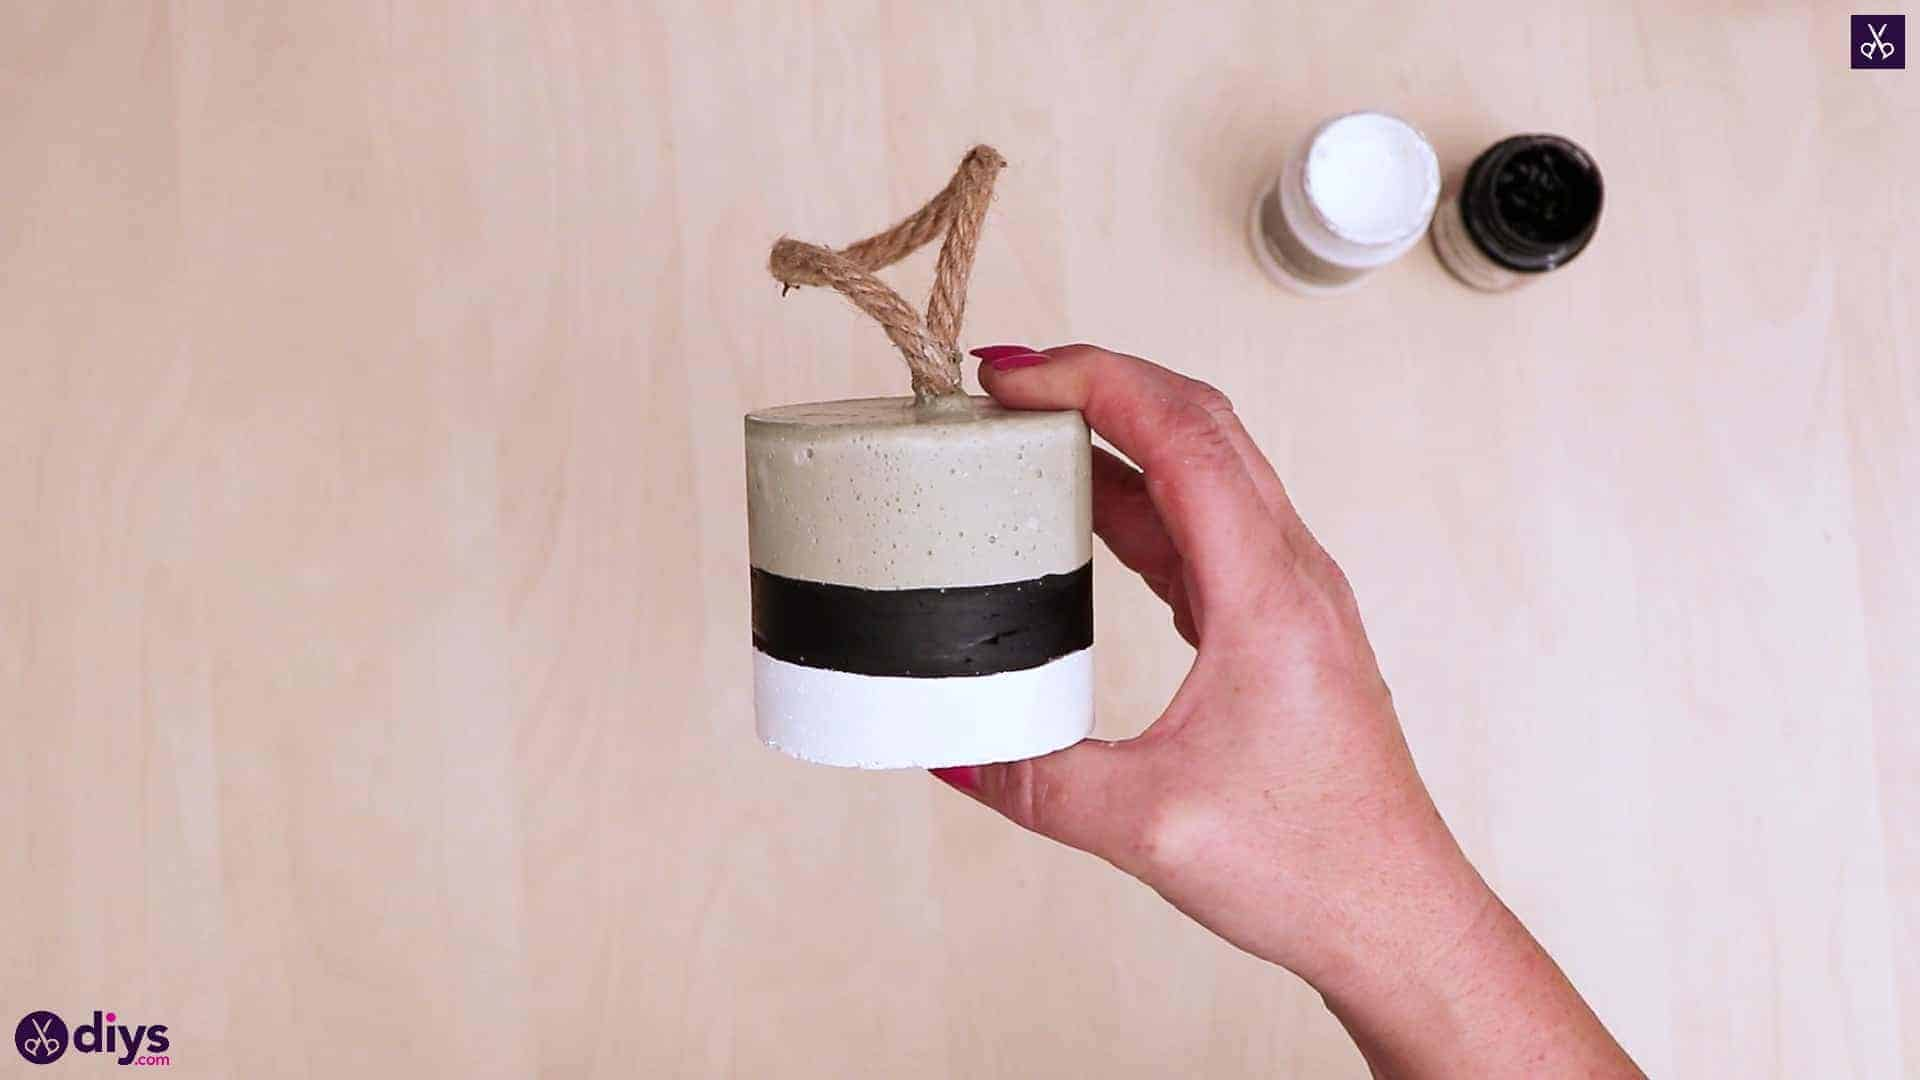 Diy concrete door stopper